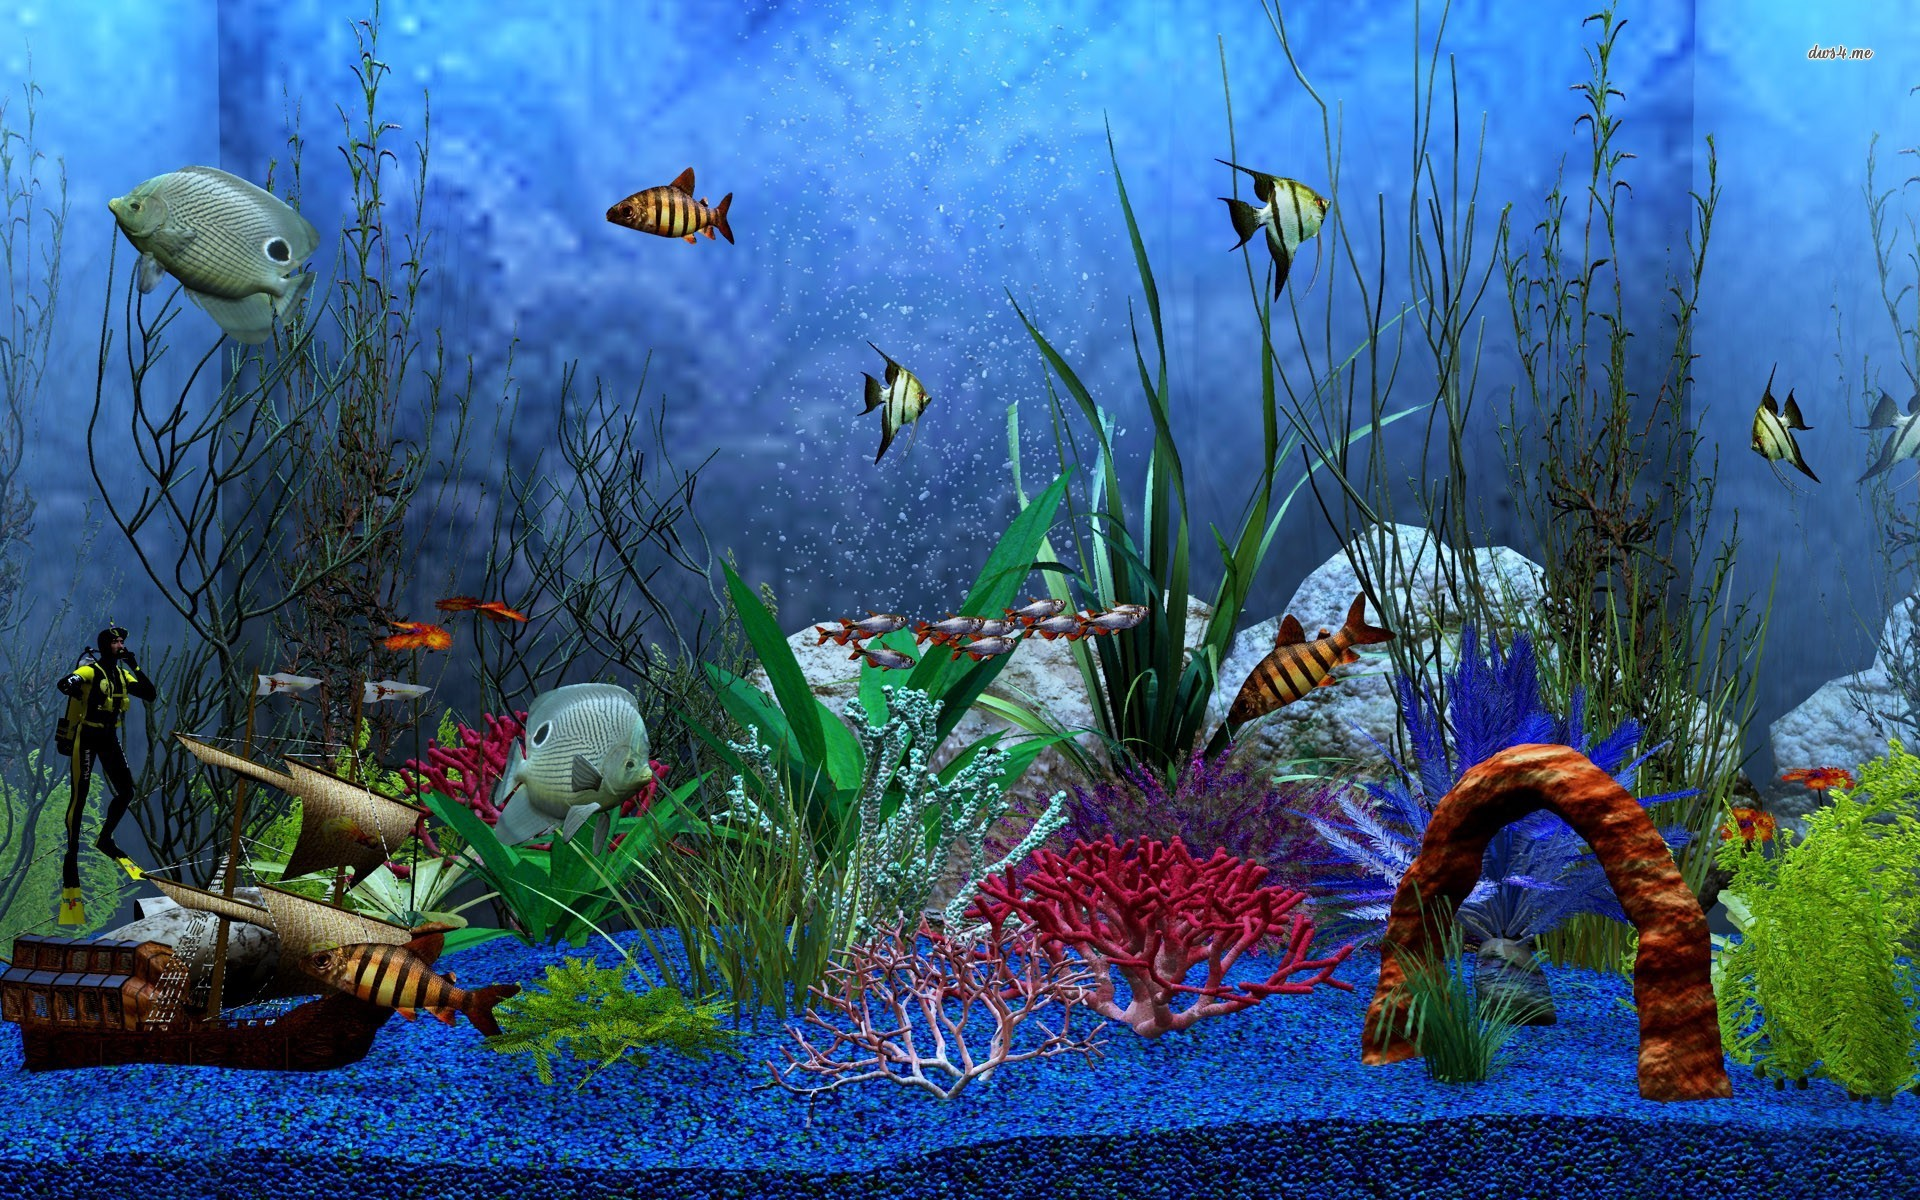 aquarium wallpaper hd - photo #33